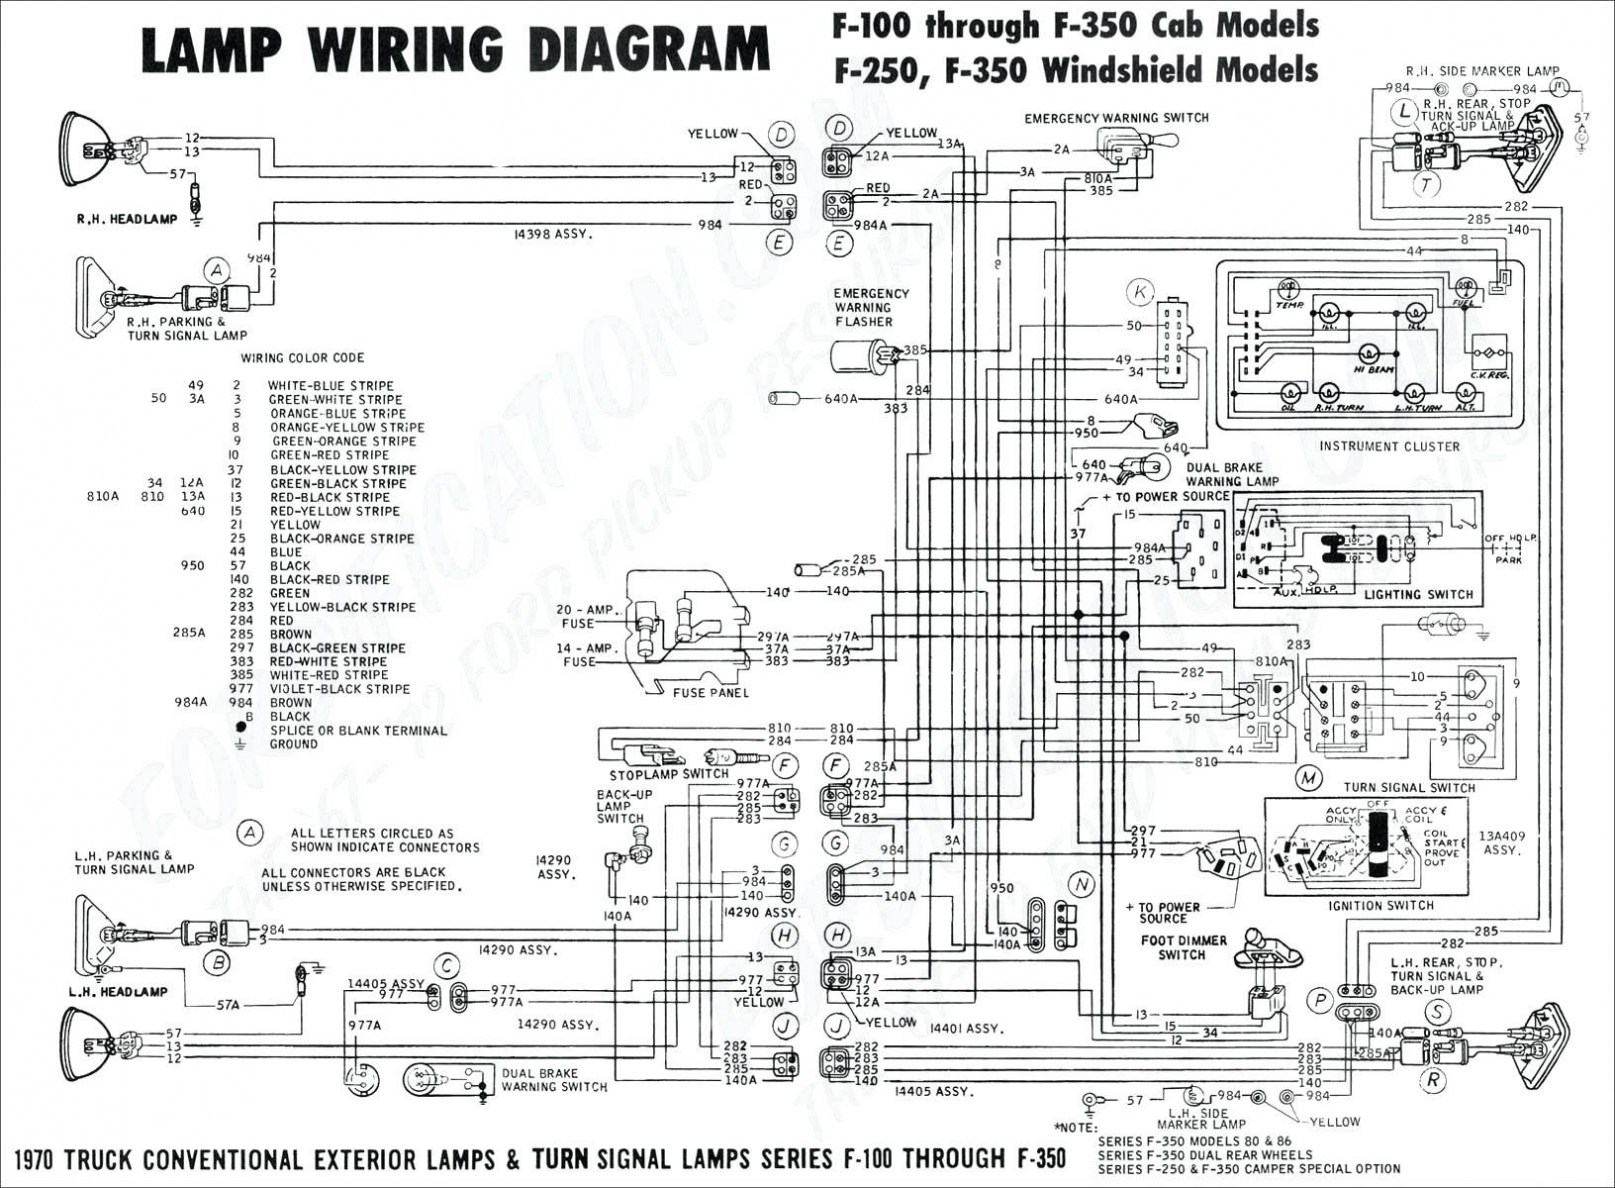 Wells Cargo Wiring Diagrams | Wiring Diagram - Enclosed Trailer Wiring Diagram